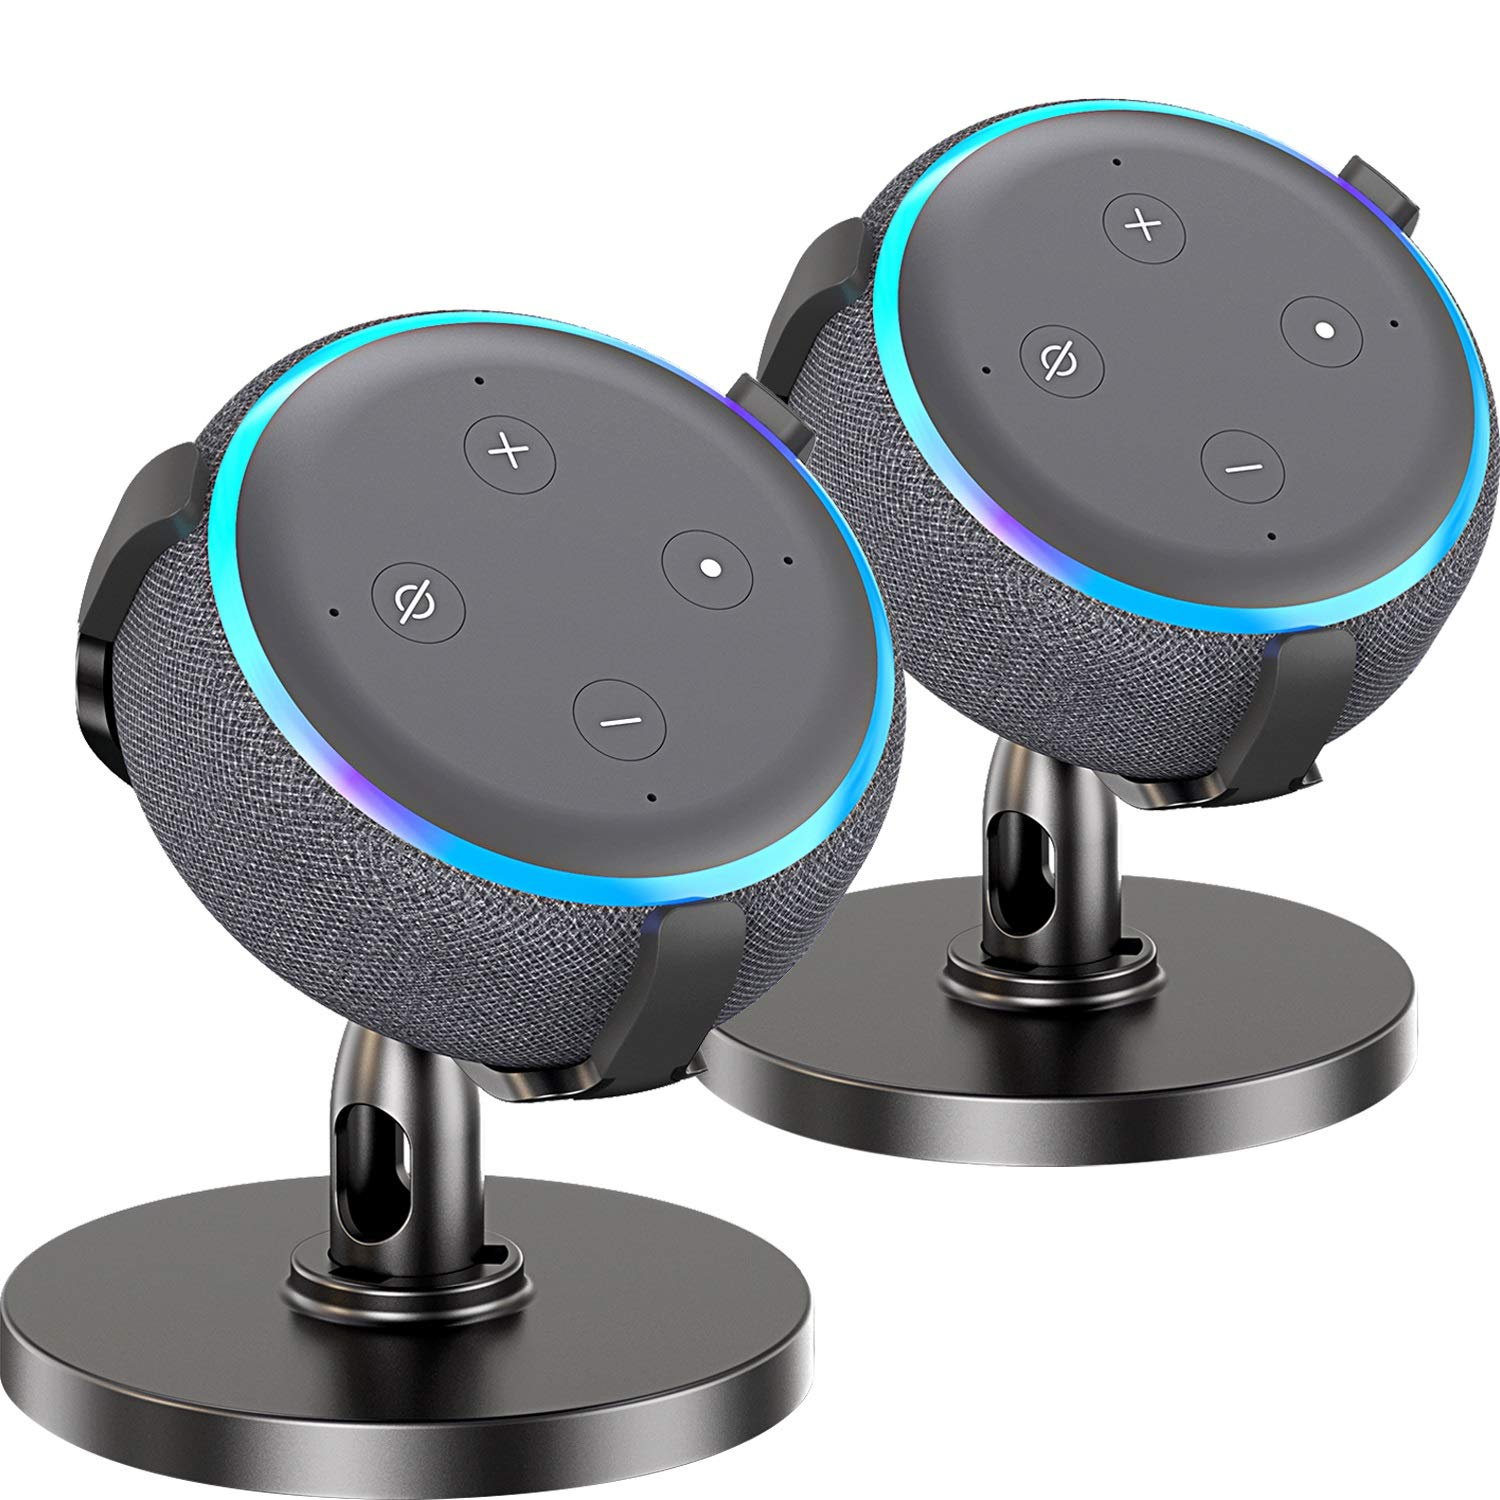 Fiada Table Holder for Dot 3rd Generation, 360°Adjustable Stand Mount Bracket Cradle with Rubber Protection for Smart Home Speaker, Improves Sound Visibility and Appearance, 2 Packs by Fiada